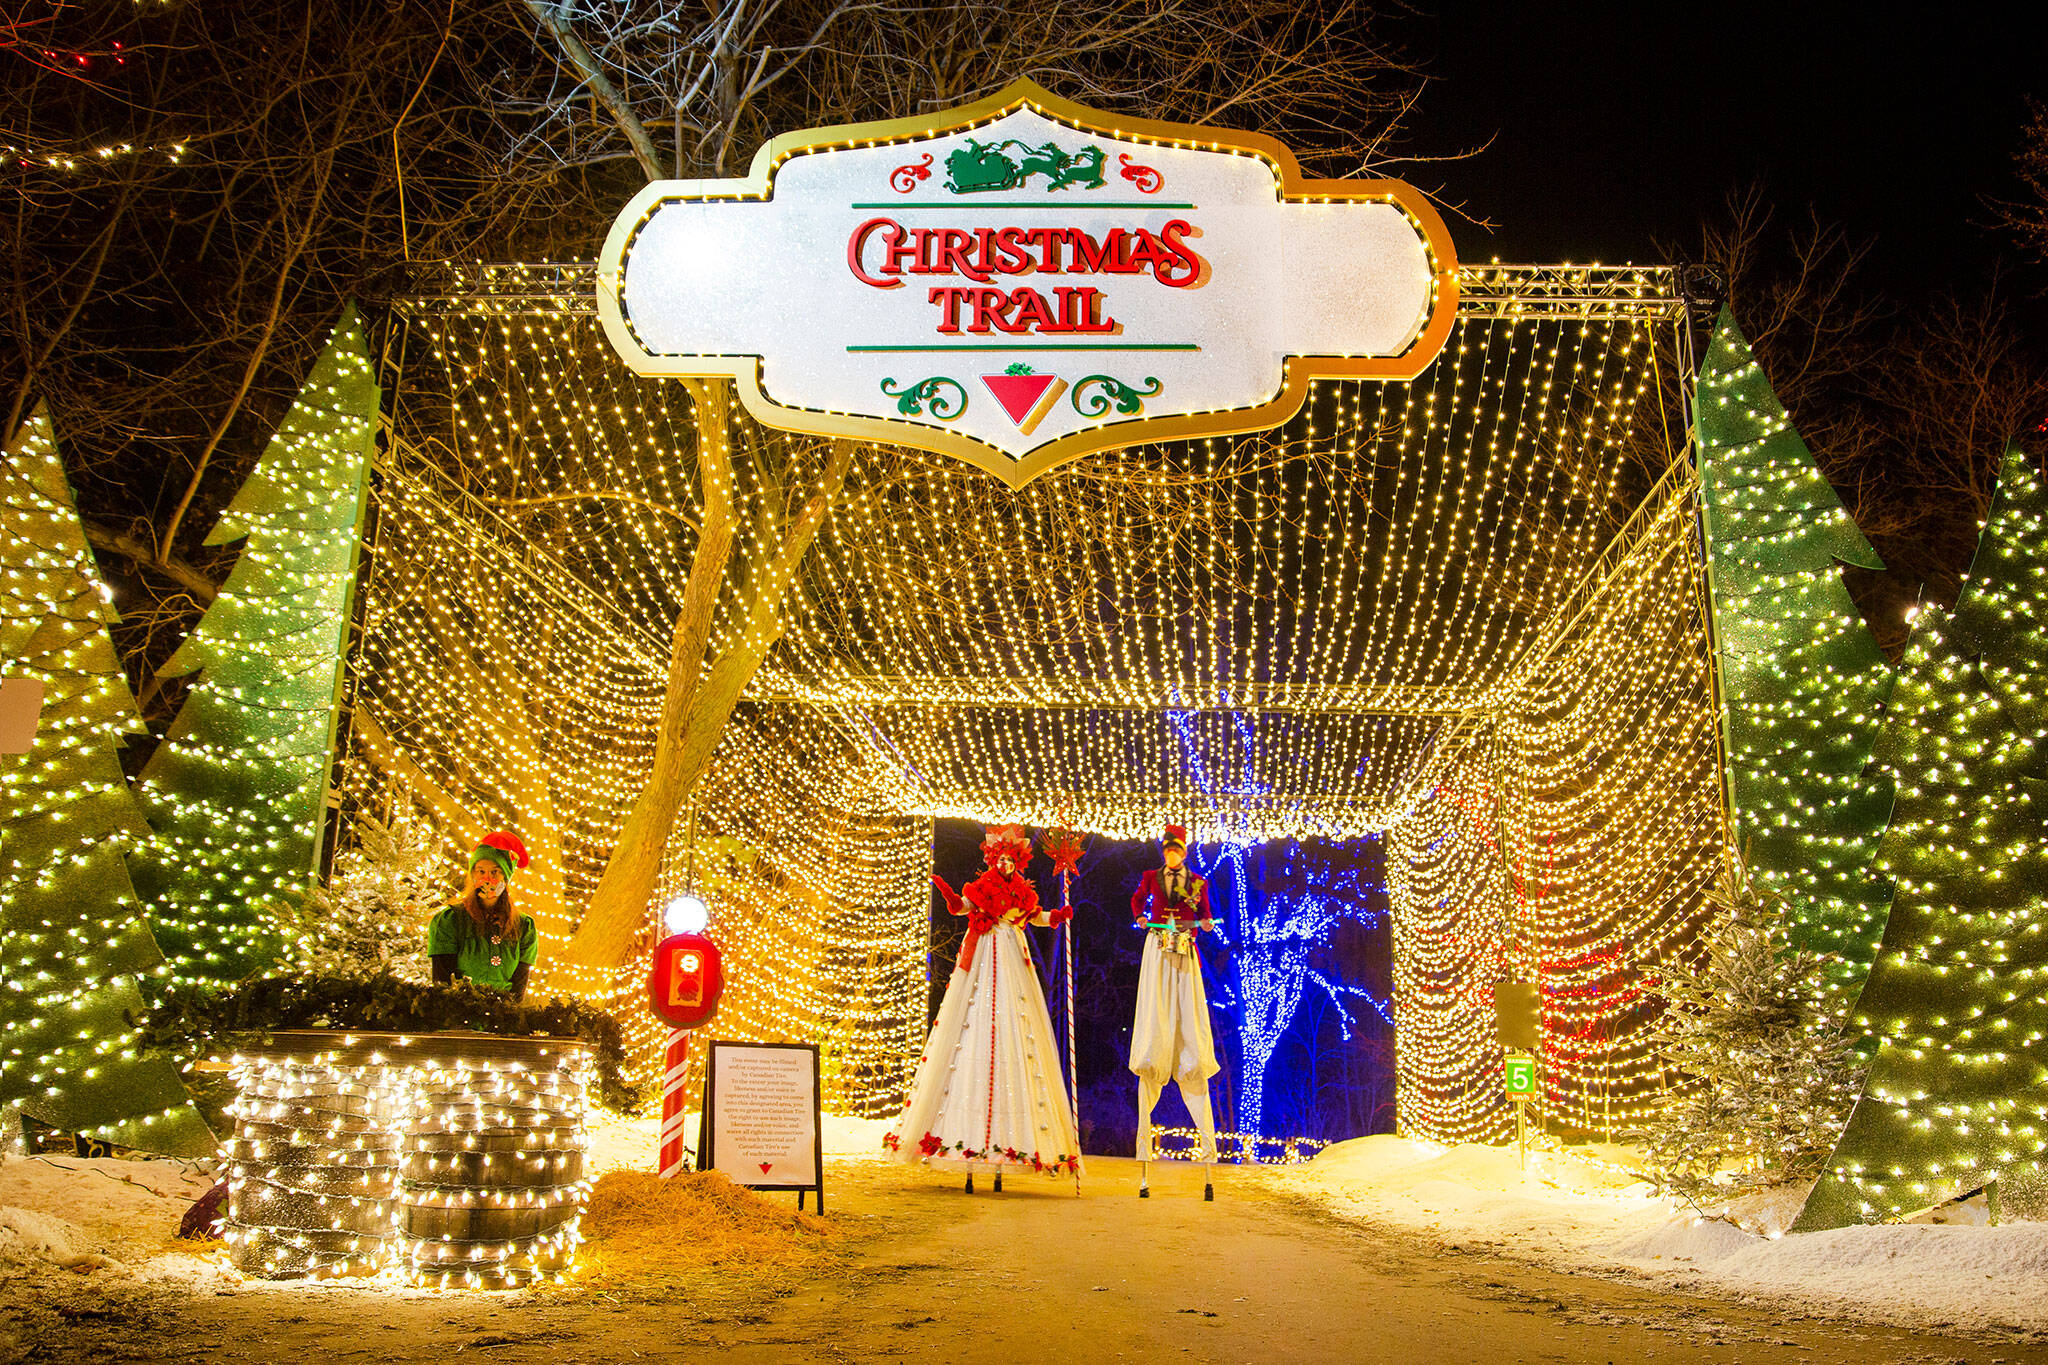 canadian tire christmas trail 2021